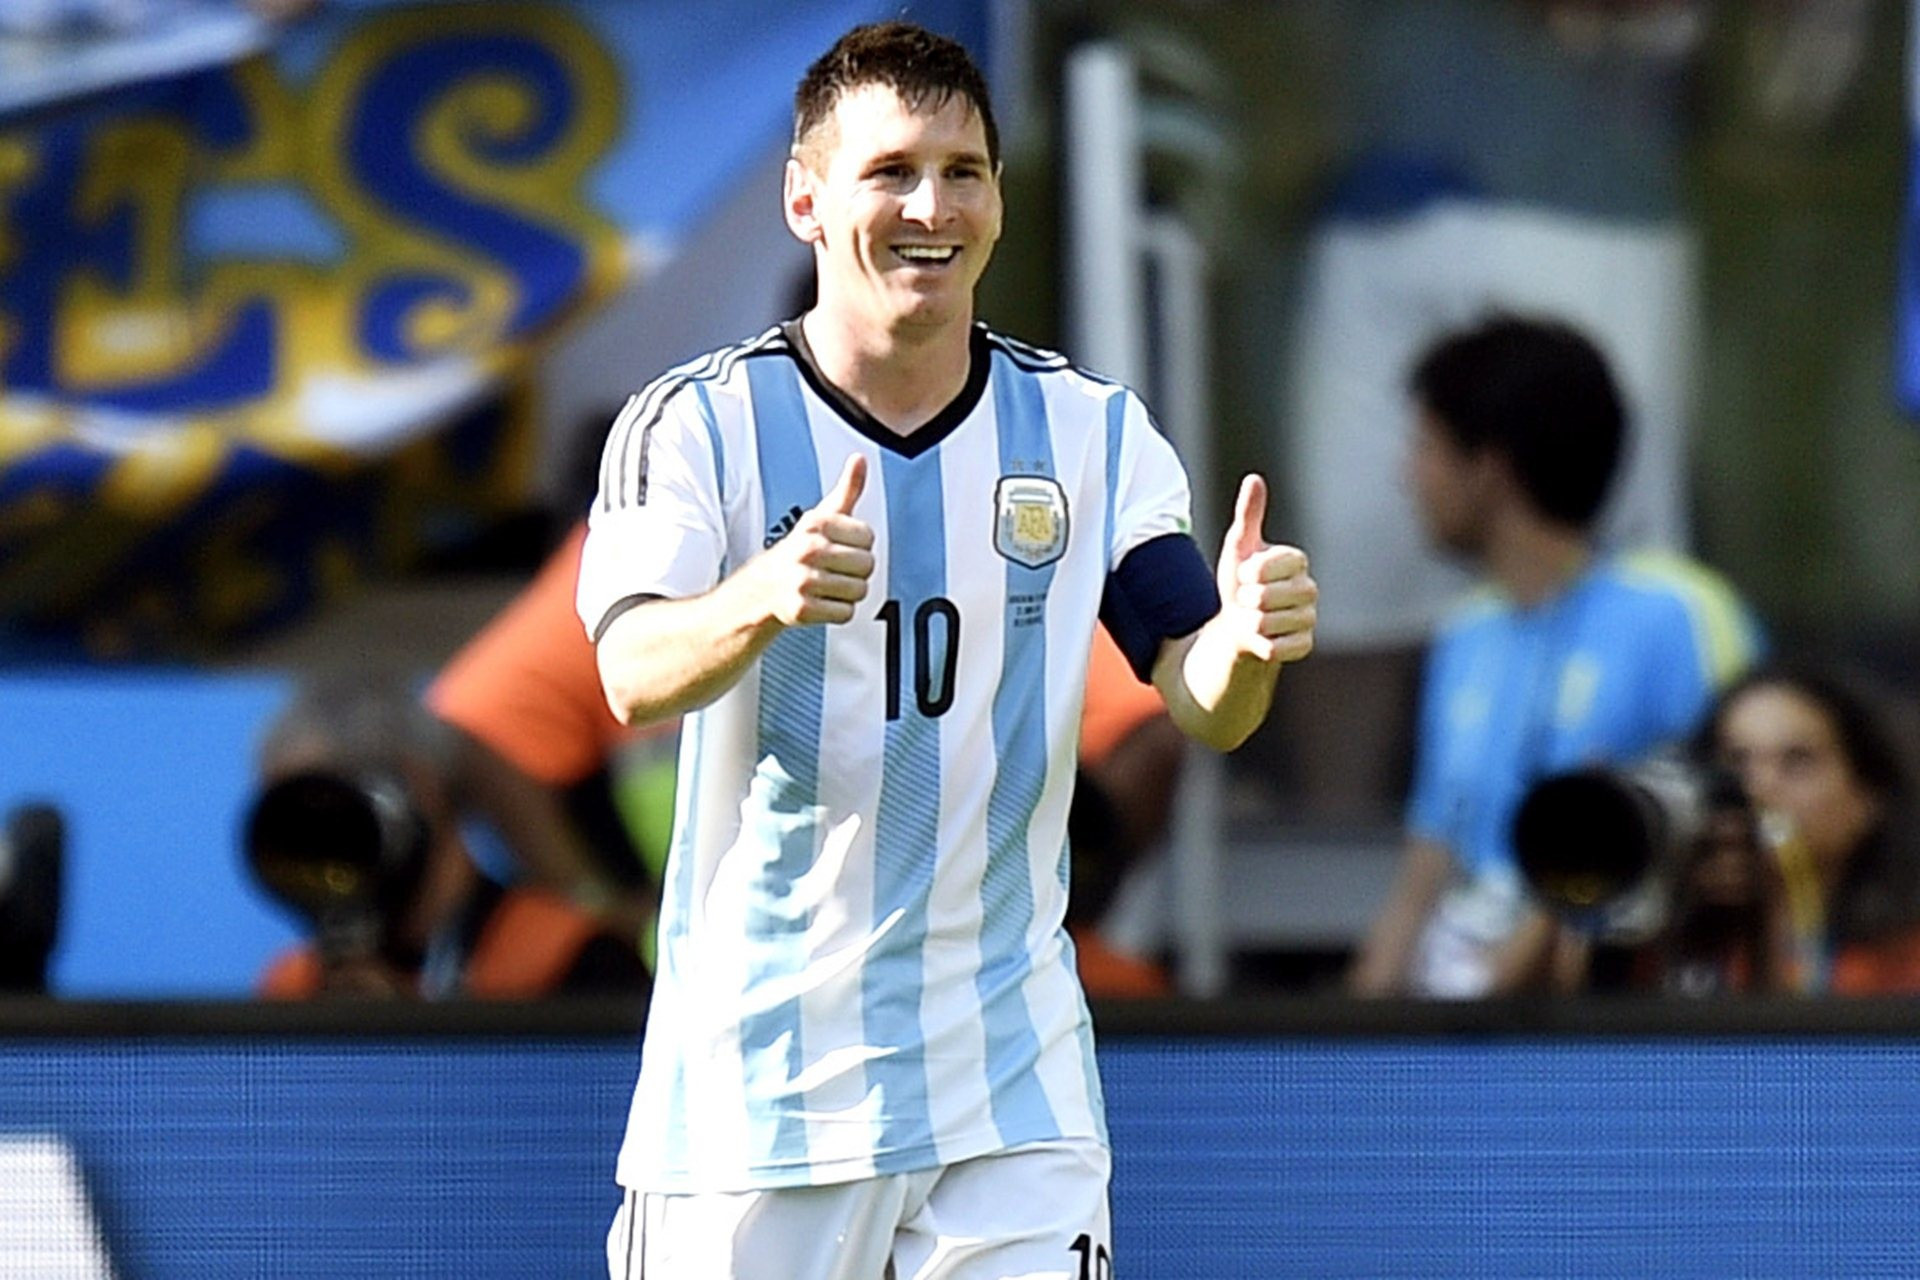 1920x1280 Soccer Wallpaper Messi Awesome Lionel Messi Wallpaper 2018 74 Images